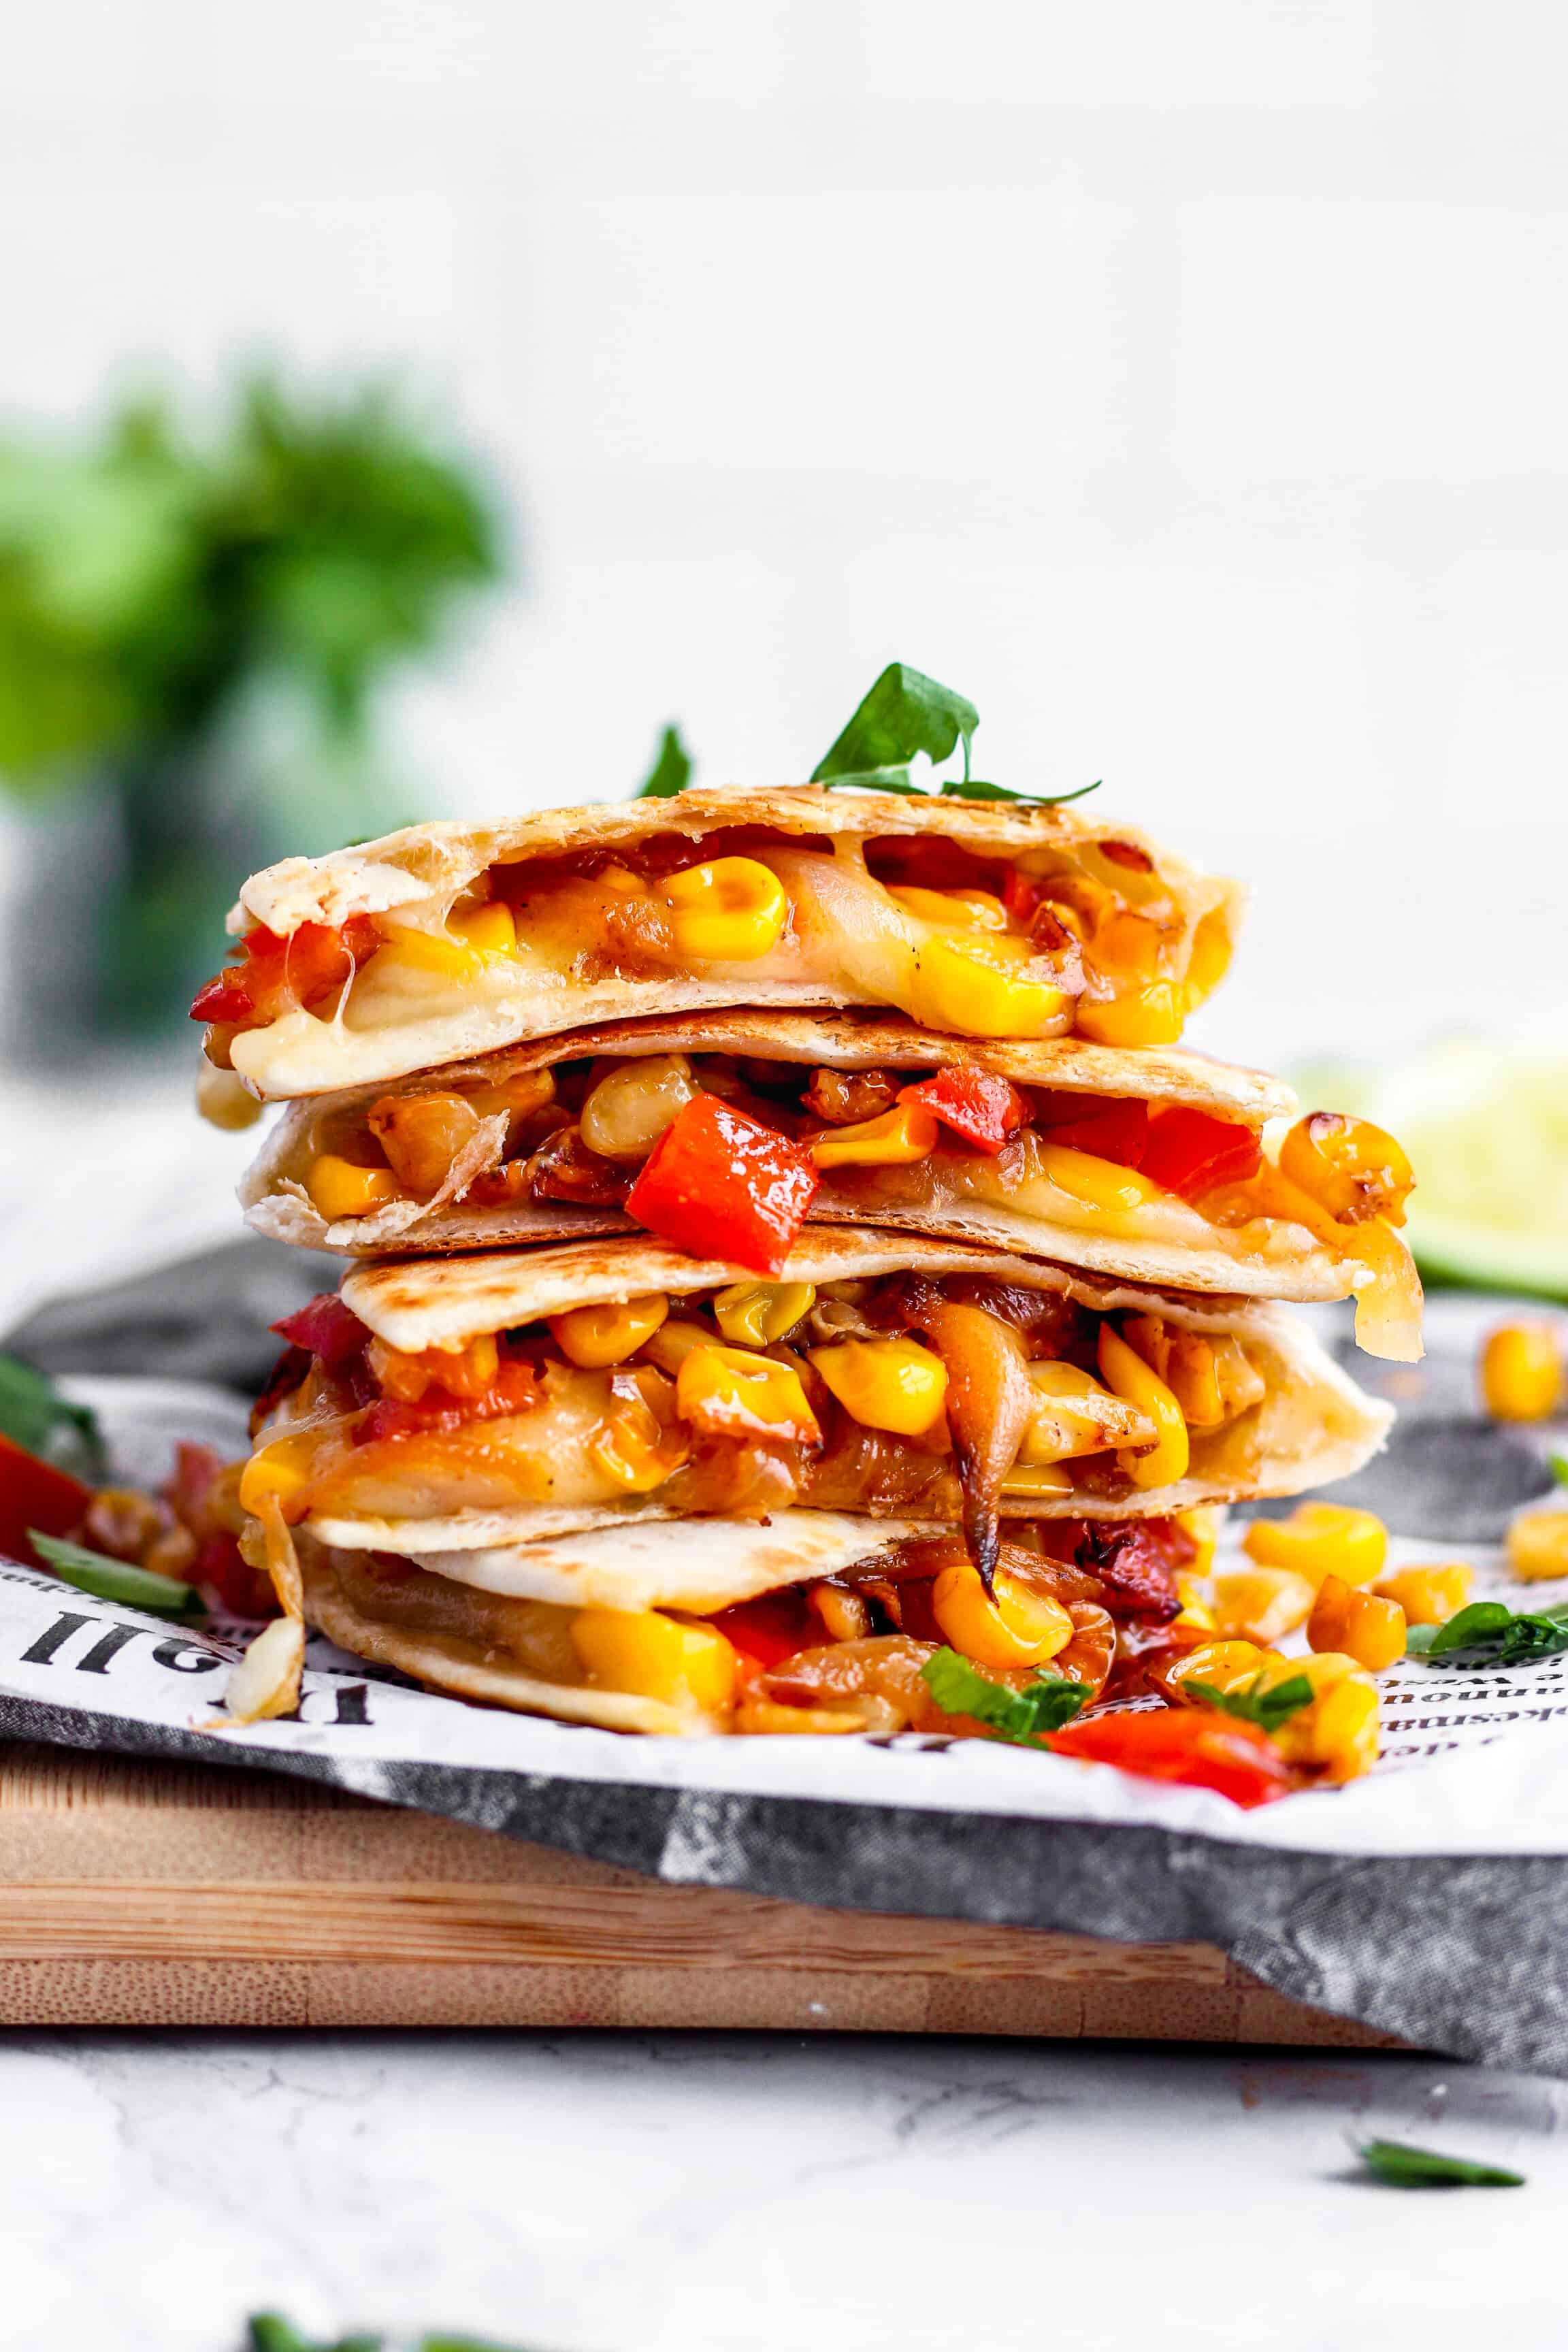 Red Pepper And Corn Vegetarian Quesadillas A Seasoned Greeting